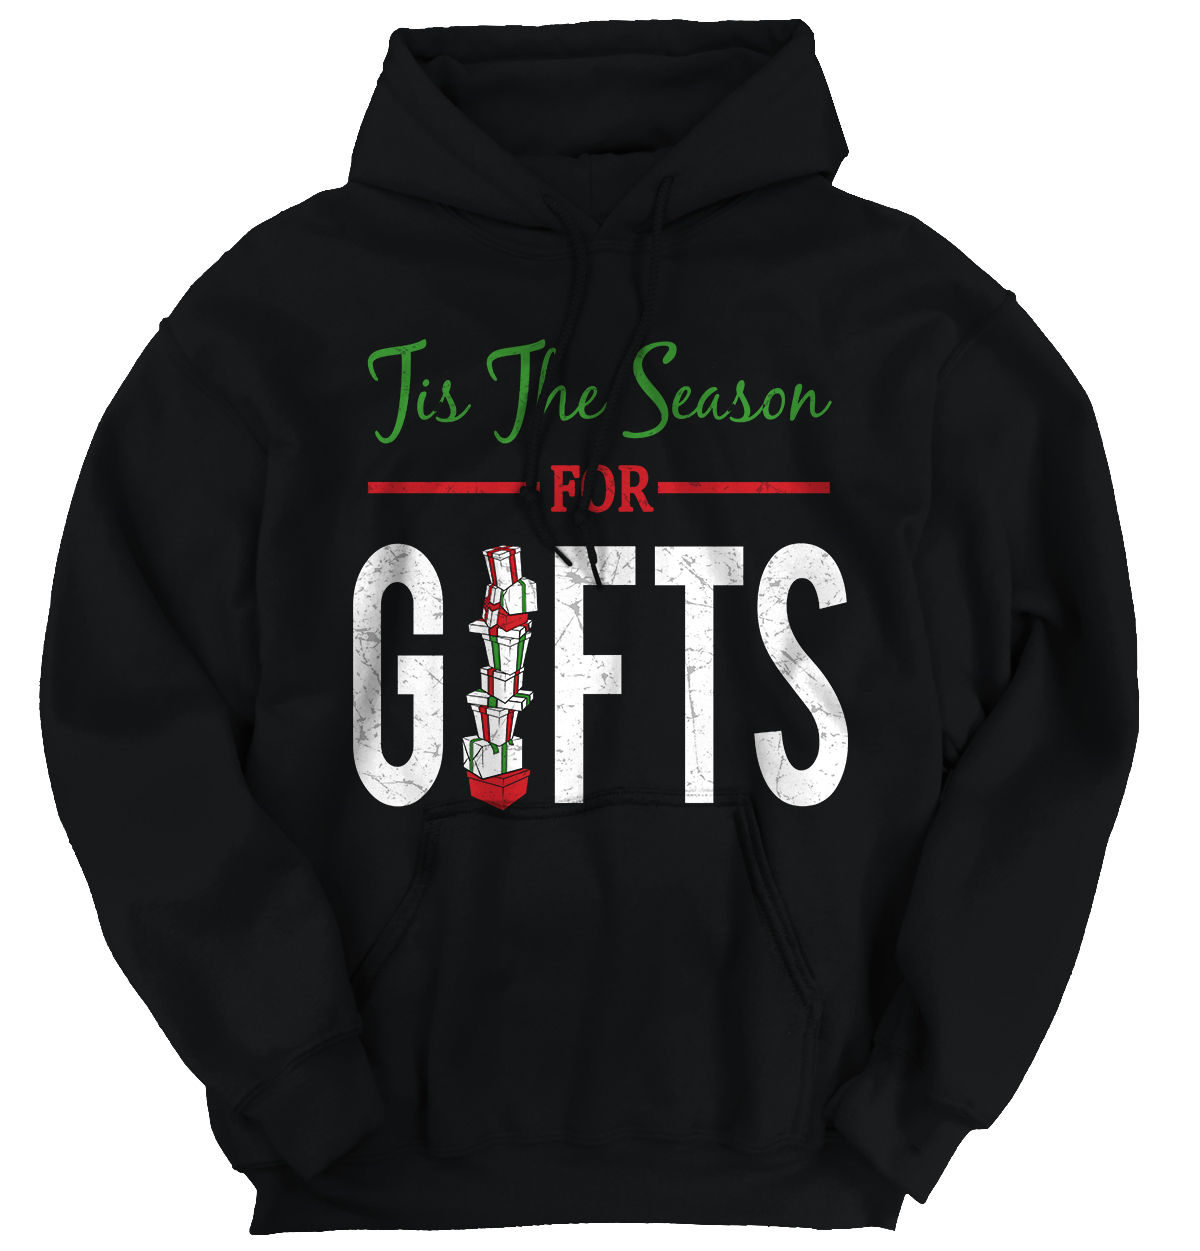 Tis The Season Funny Shirt Christmas Gift Idea Sarcastic Cute Hoodie